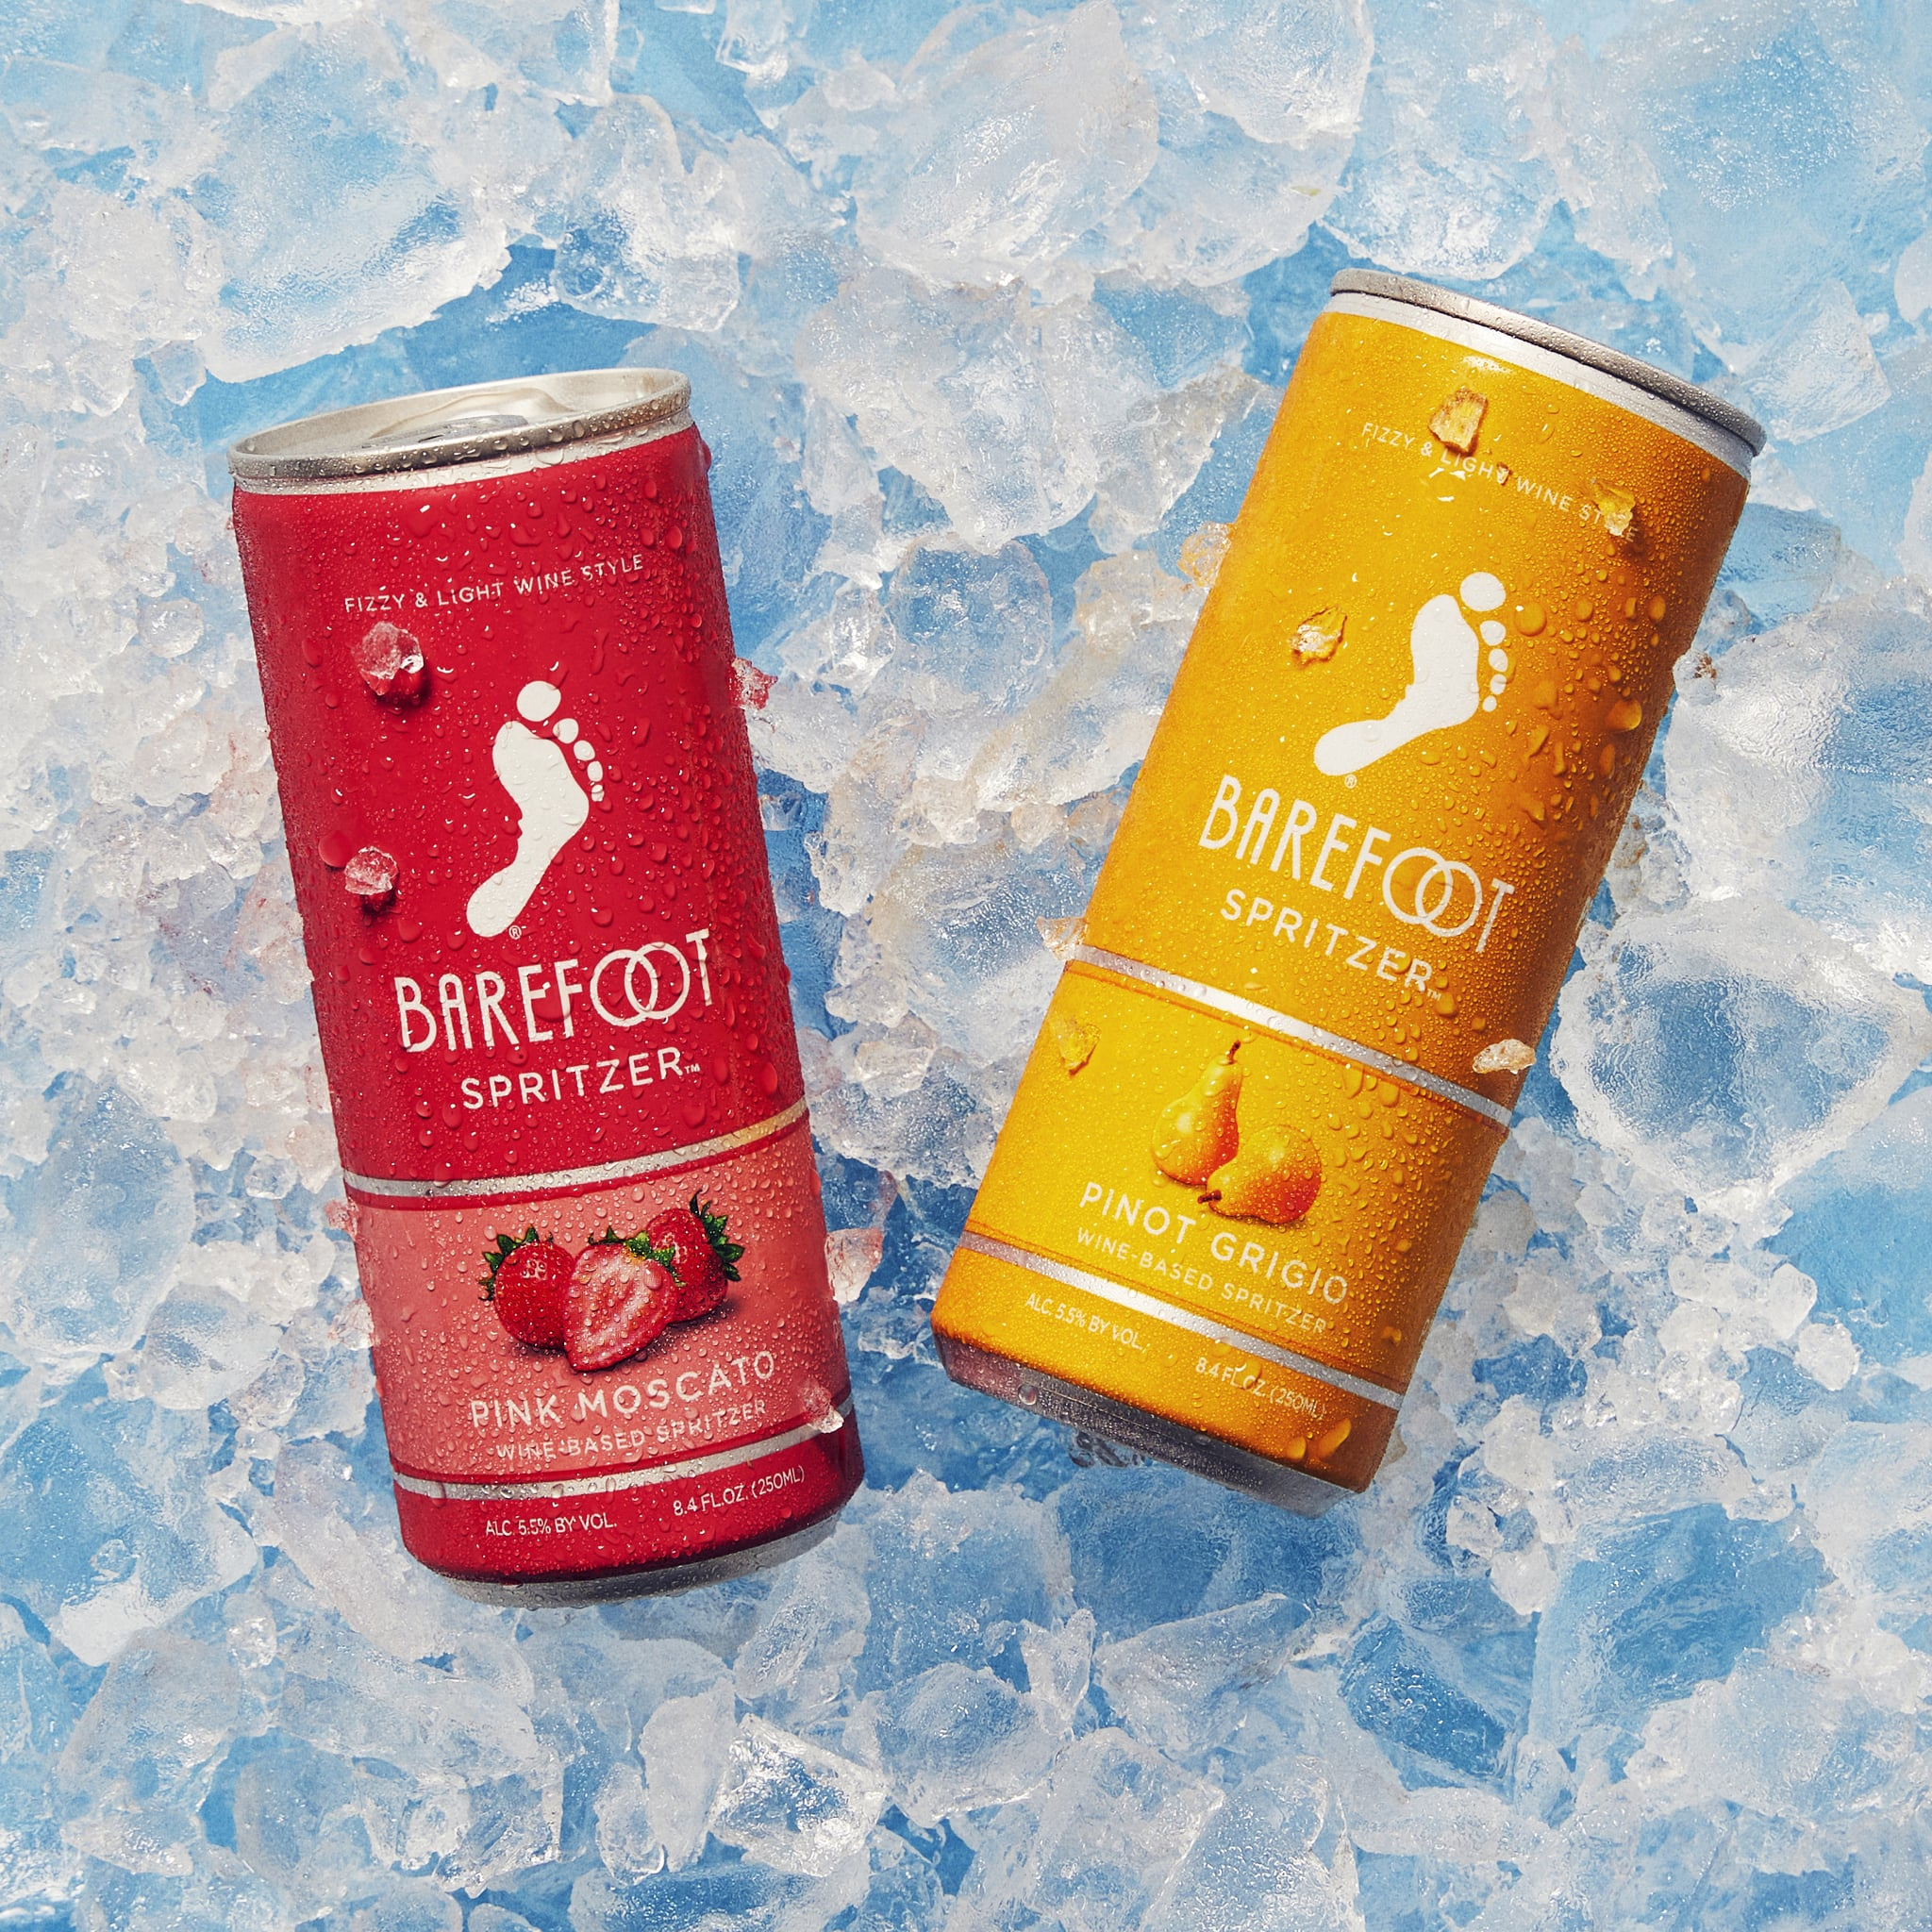 Barefoot Canned Wine Spritzer Flavors 2019 | POPSUGAR Food